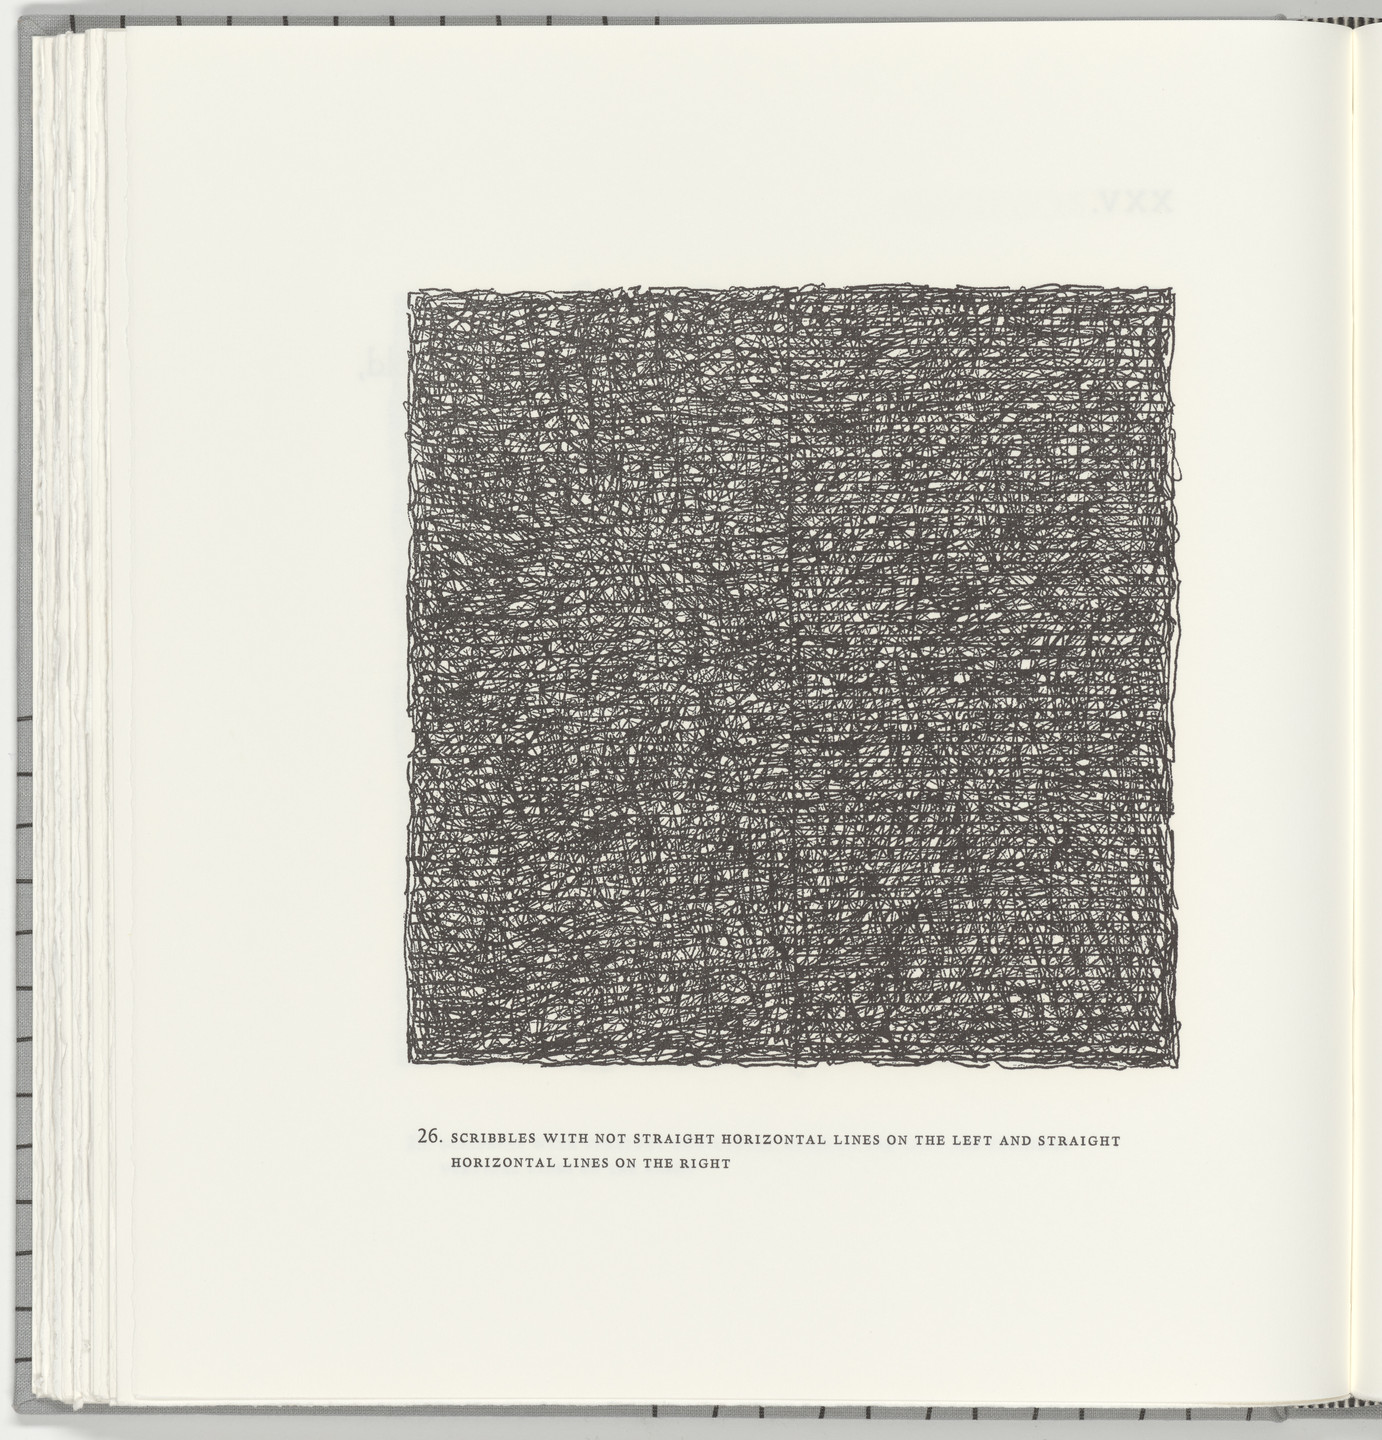 Sol LeWitt. Scribbles with Not Straight Horizontal Lines on the Left and Straight Horizontal Lines on the Right (plate 26) from Squarings. 2003